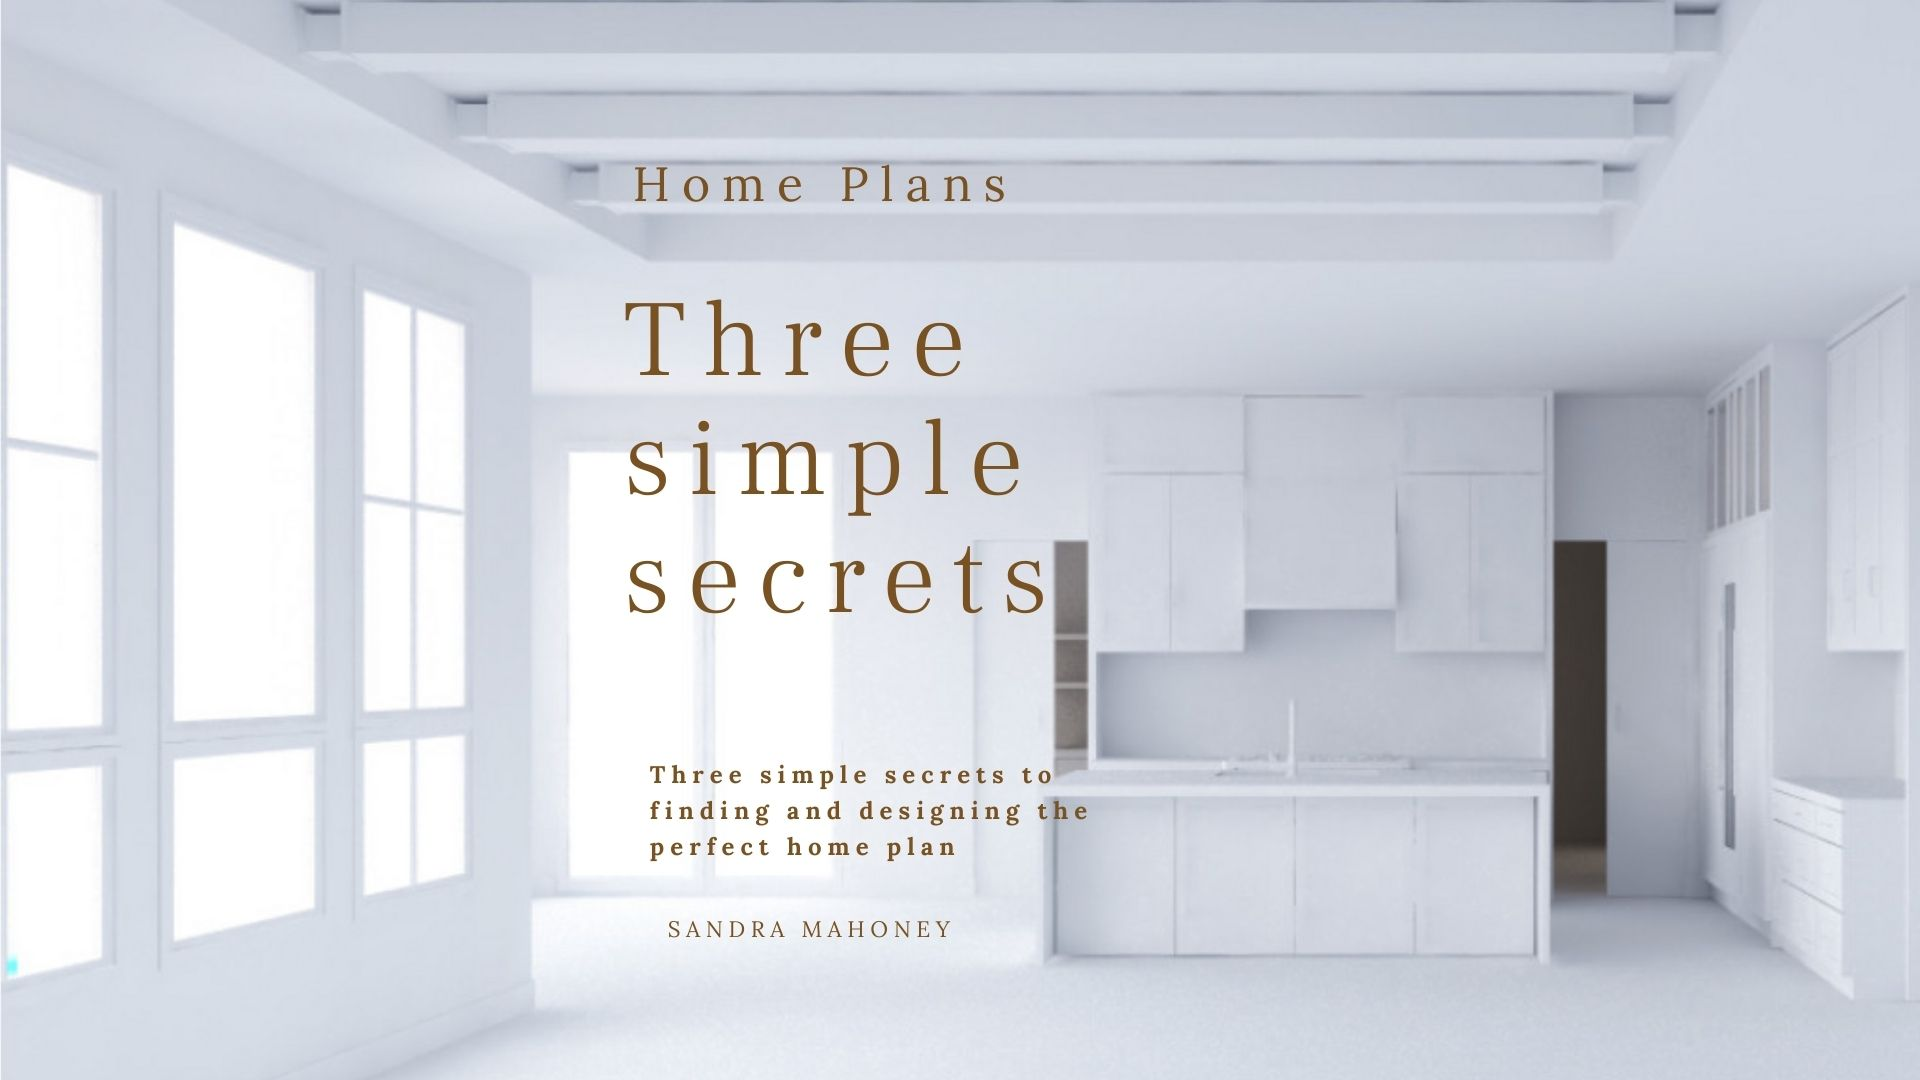 3 Simple Secrets Home Plans